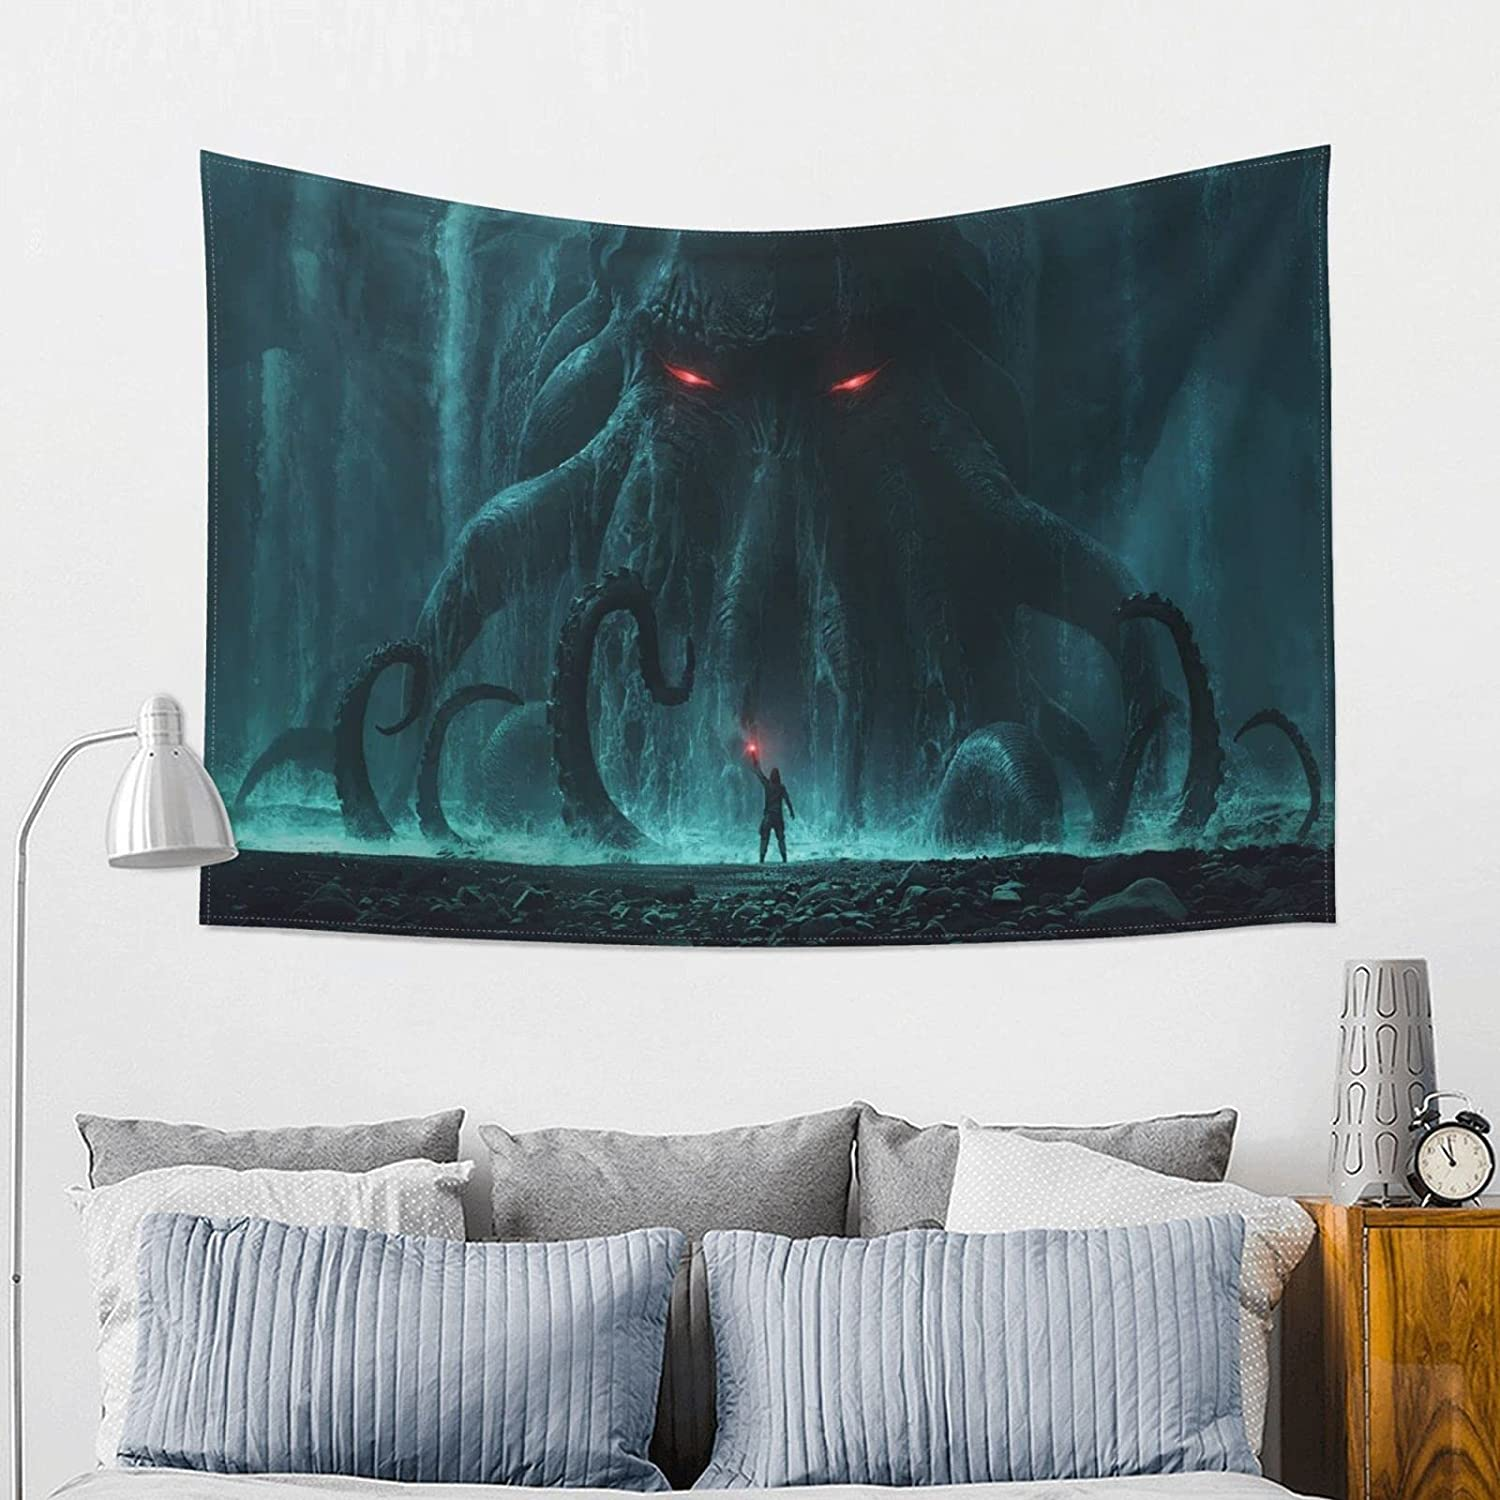 Cthulhu Anime Wall Hanging Art For Bedroom Living Room College Dorm Home Decor Tapestries Christmas, One Size